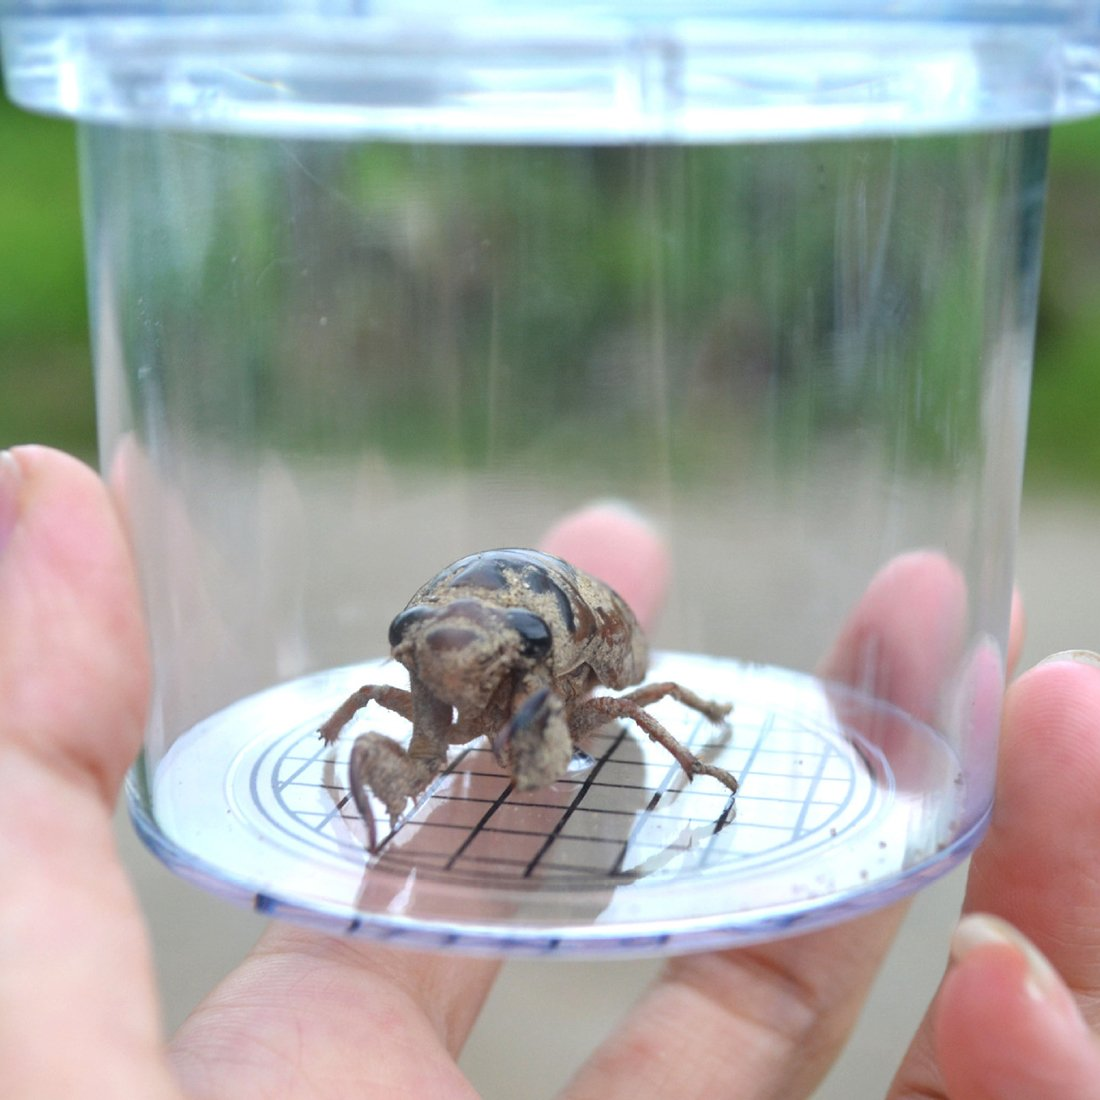 Science Nature Exploration Toys Insect Explore MingCheng Bug CritterCage Magnifying Bug Viewer 5 PCS